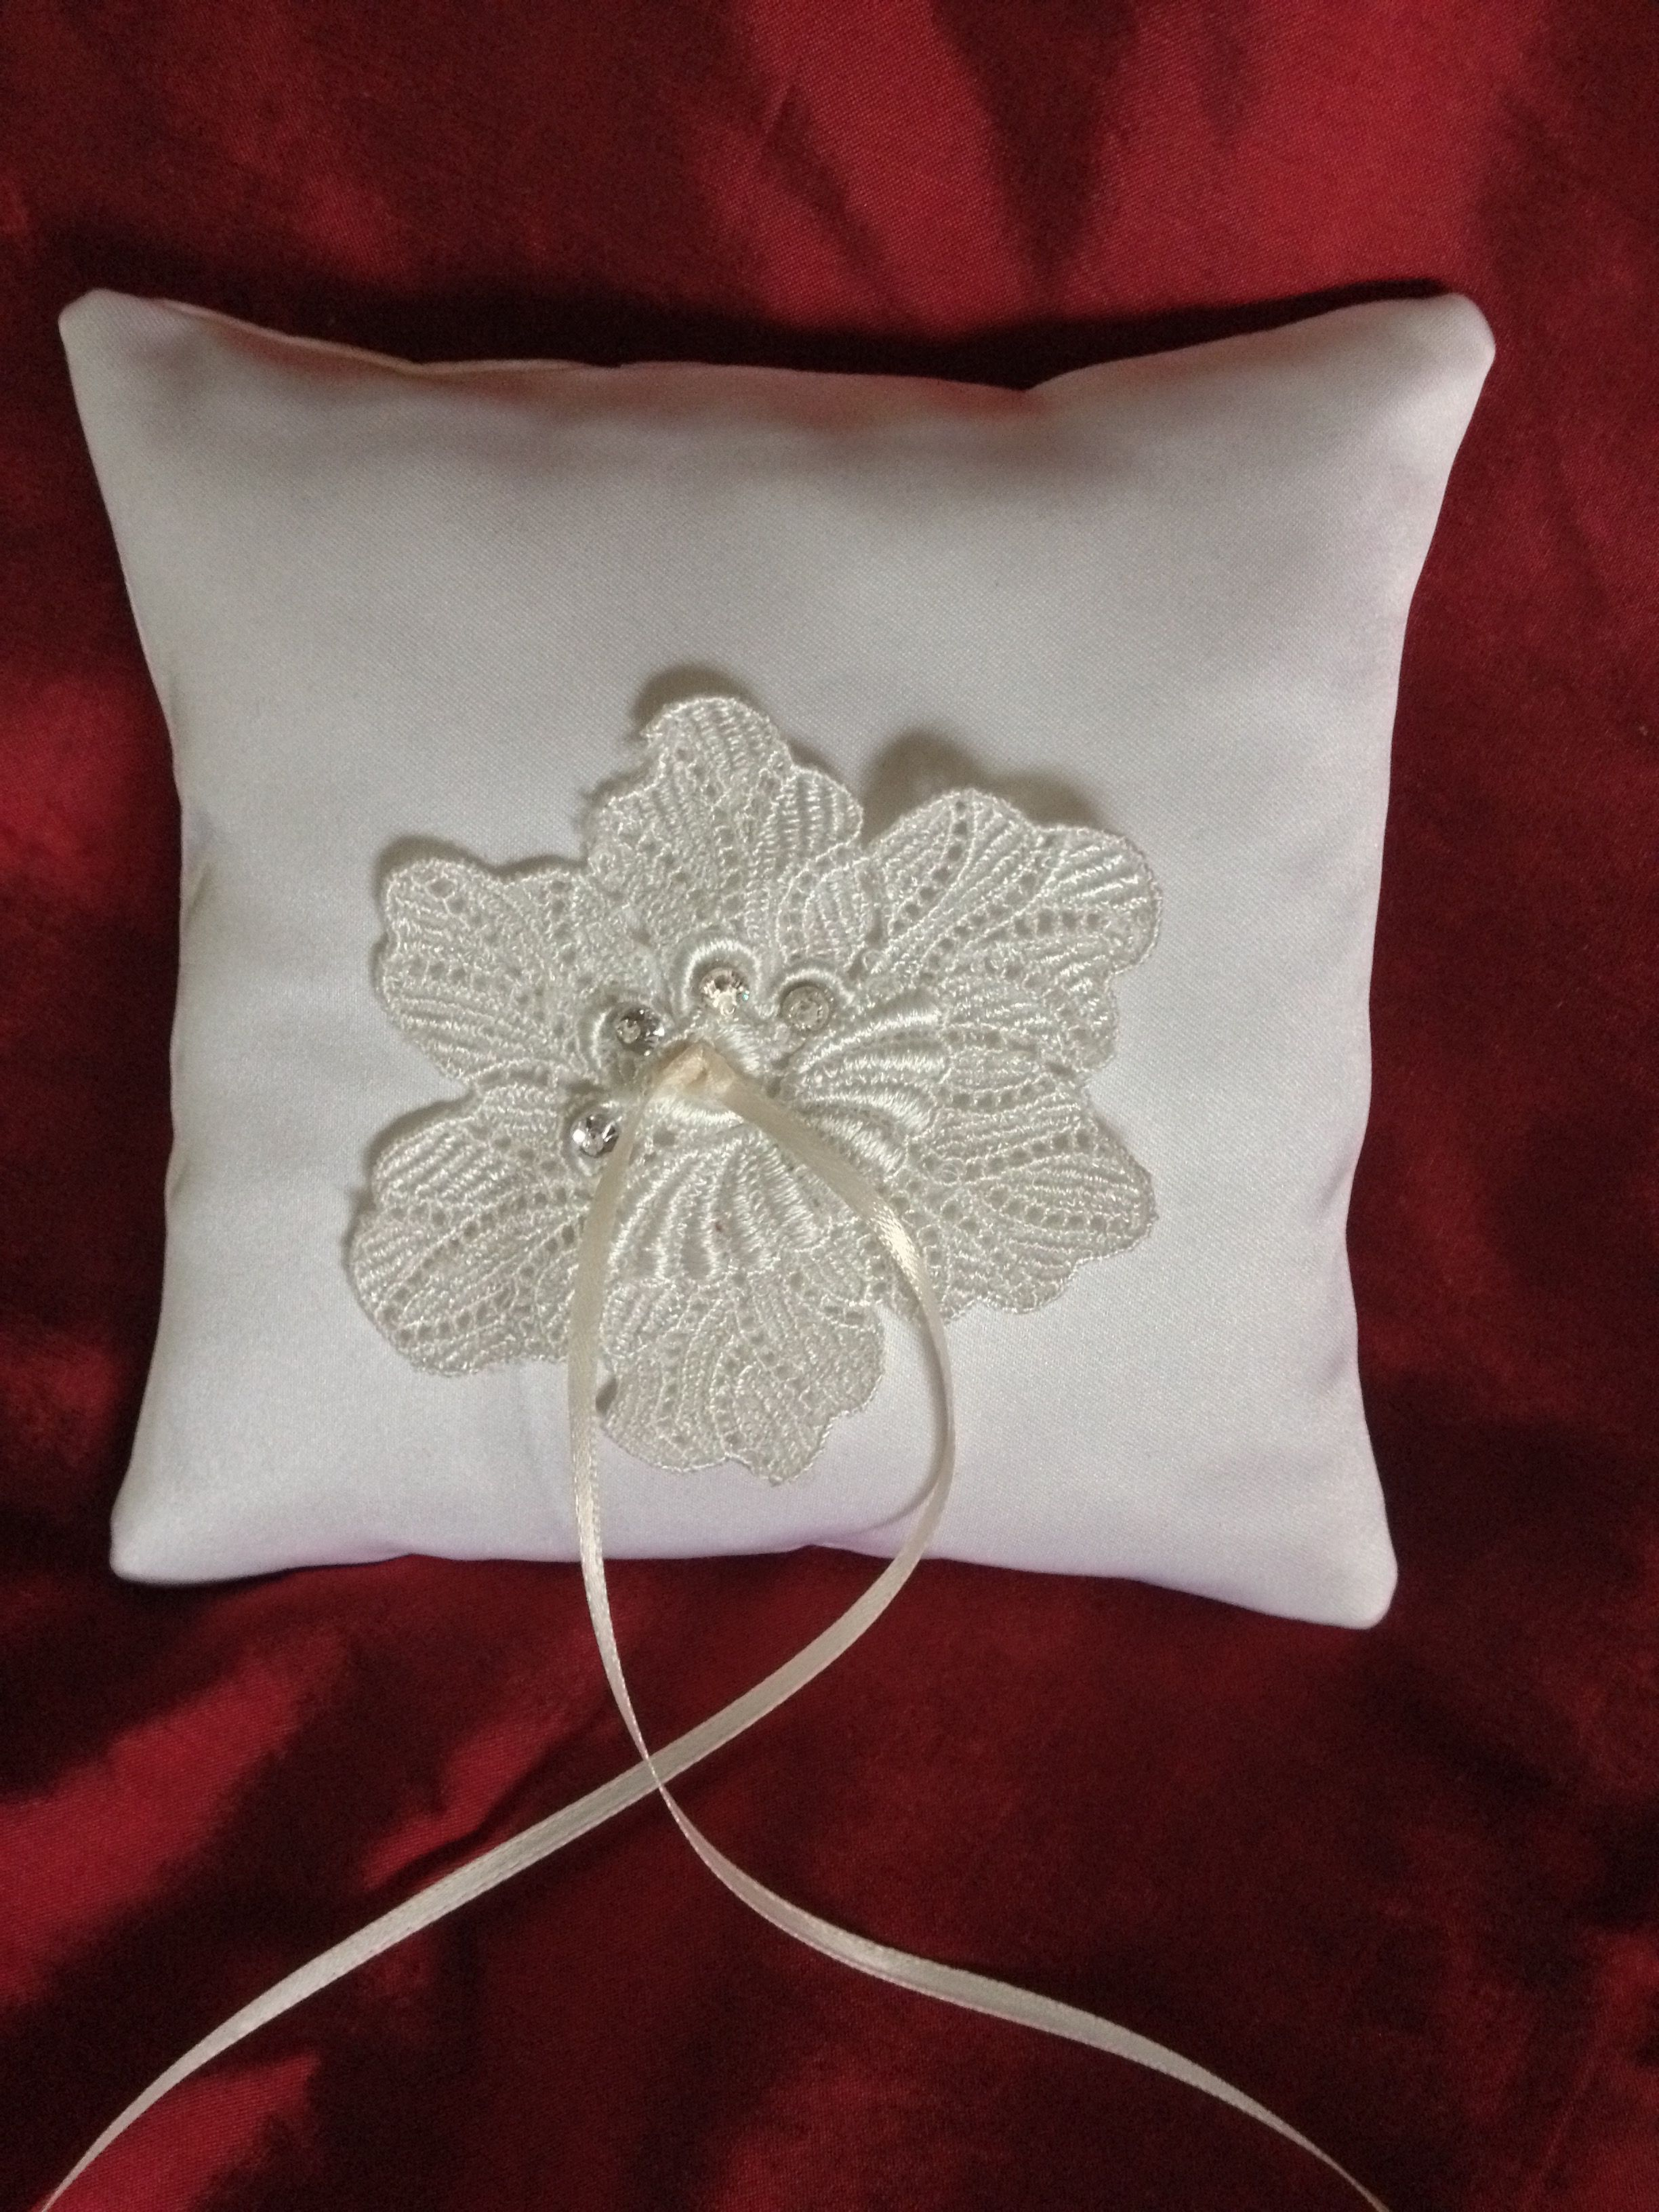 Most beautiful hand made ring pillow - 100% silk with floating flower applique from French embroidered lace and rhinestones beads.  Limited addition.  Feel free to contact us at: www.alterationsavenue.com